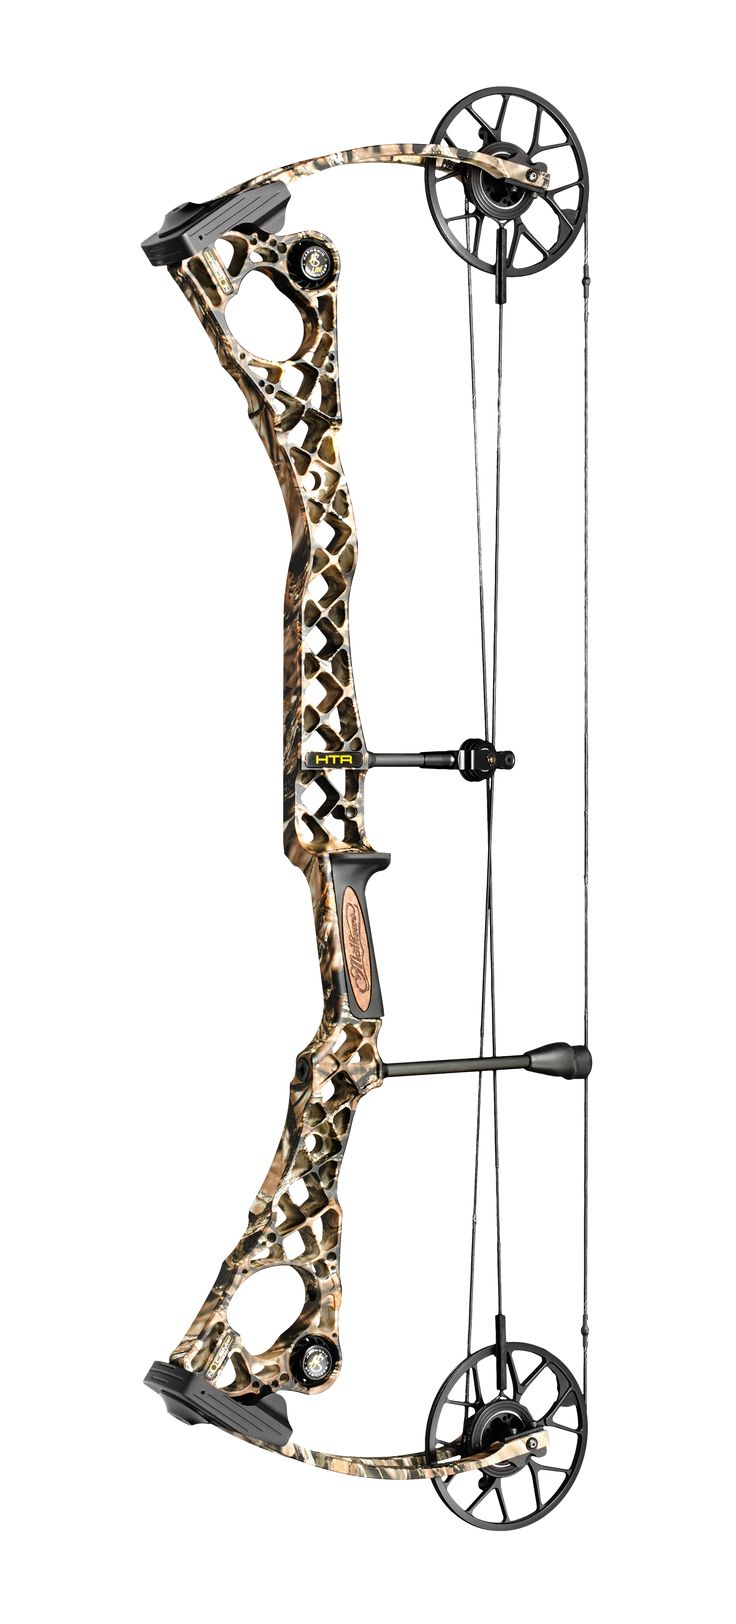 "Matthews No Cam. Brace Height 6 5/8"" //   Draw Weight 50, 60 & 70 lbs  // Bow Weight 4.14 / 4.3 lbs (With Two Harmonic Stabilizers) //  approximate  Let-off 65%, 75%, 85%  // Draw Lengths 24-30""  // Half Sizes 24.5-29.5"" //   String/Cable String: 59 7/8"" Cable: 37 5/8"" //   Riser Length 28.92"" // IBO Rating up to 330 fps  Axle-to-Axle 32"" // MSRP $1099"